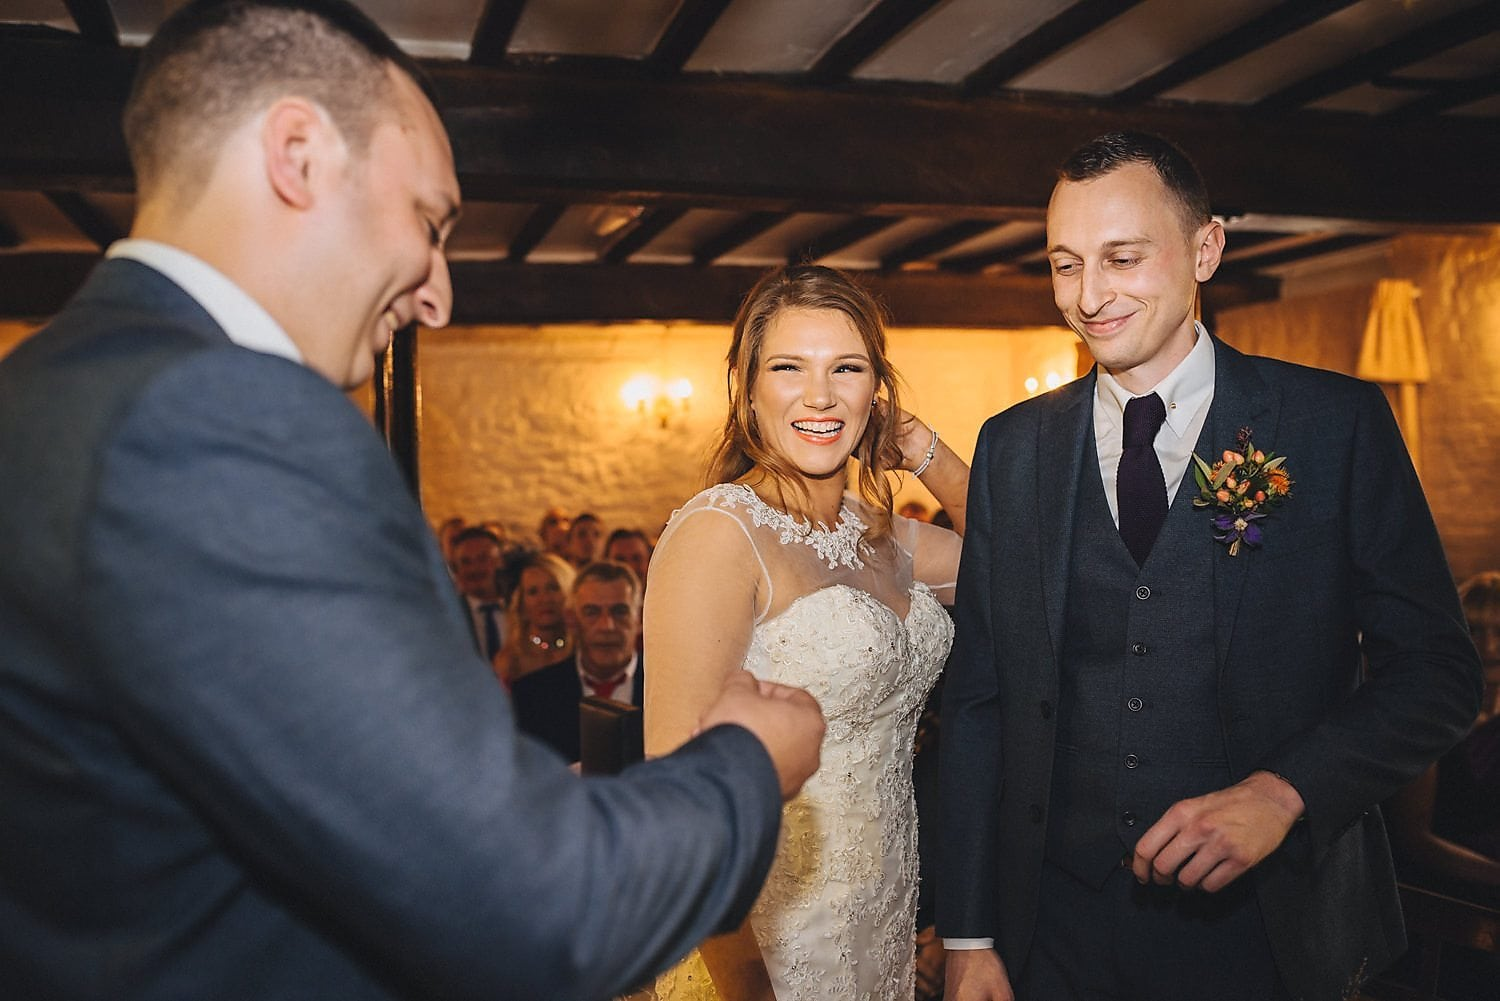 Bride and groom laugh during their ceremony at Coltsford Mill